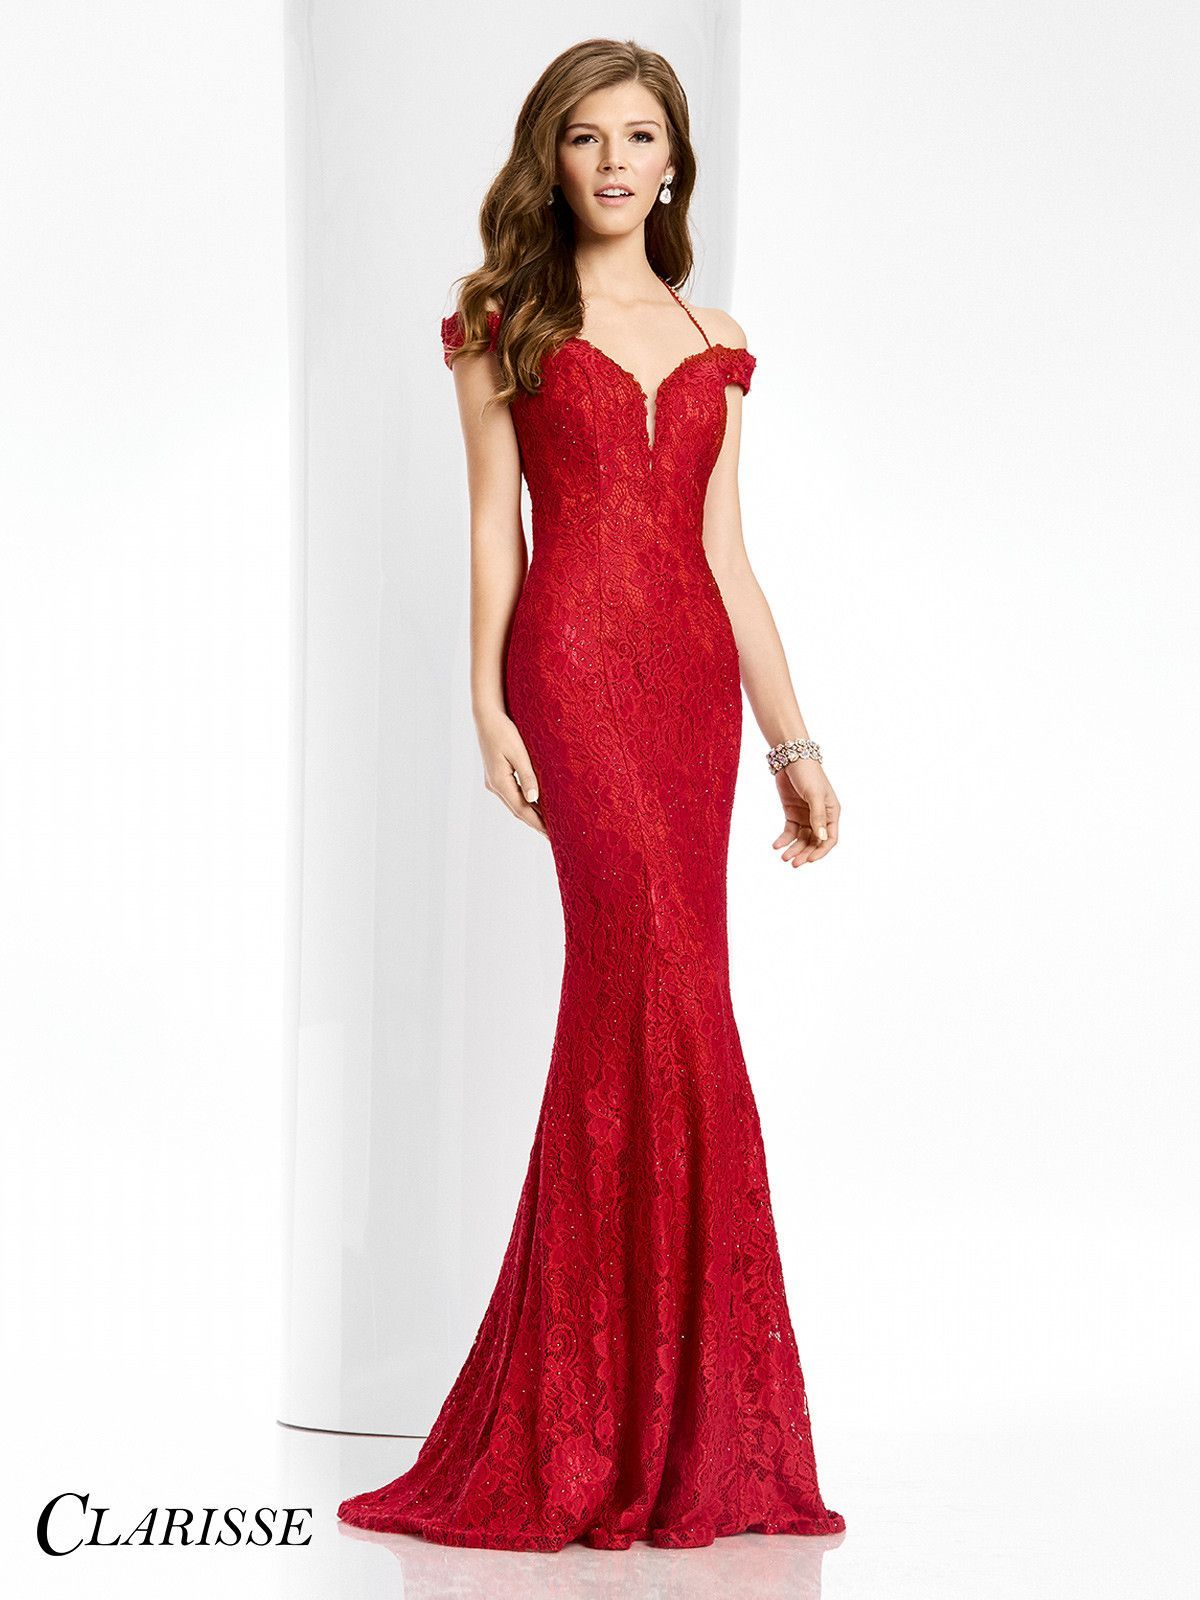 Clarisse Couture 4801 Vamp Red Prom Dress